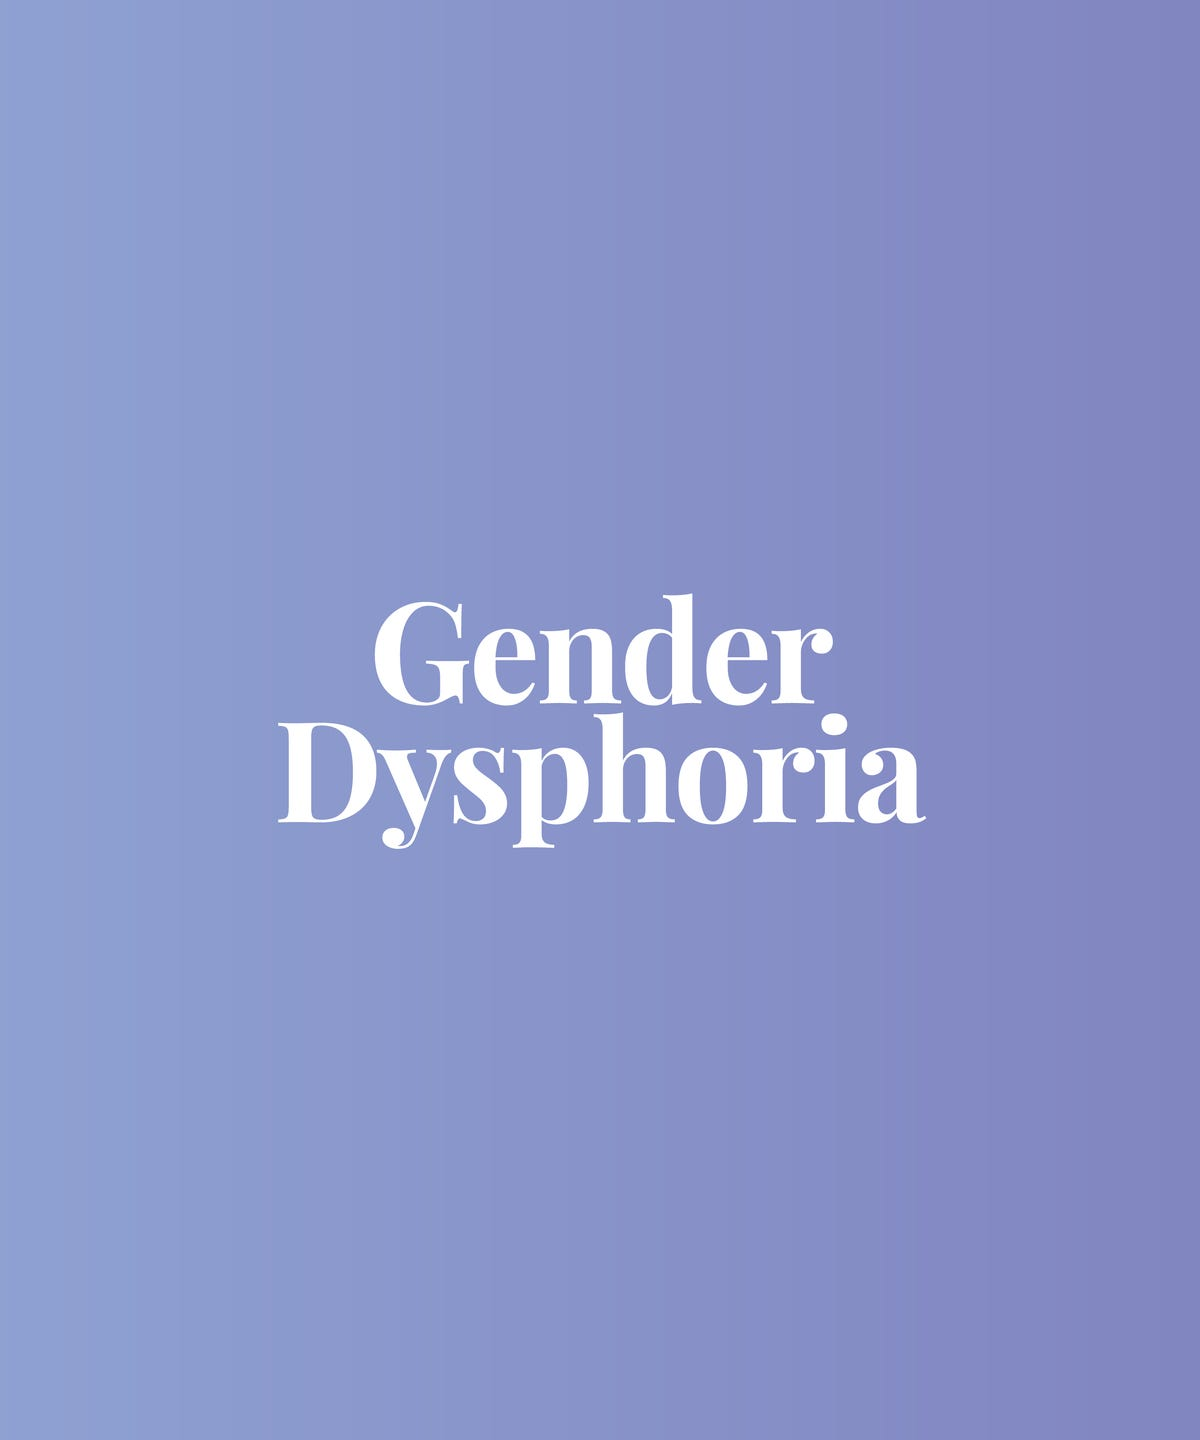 Gender Identity Terms And Examples, LGBTQ Definitions